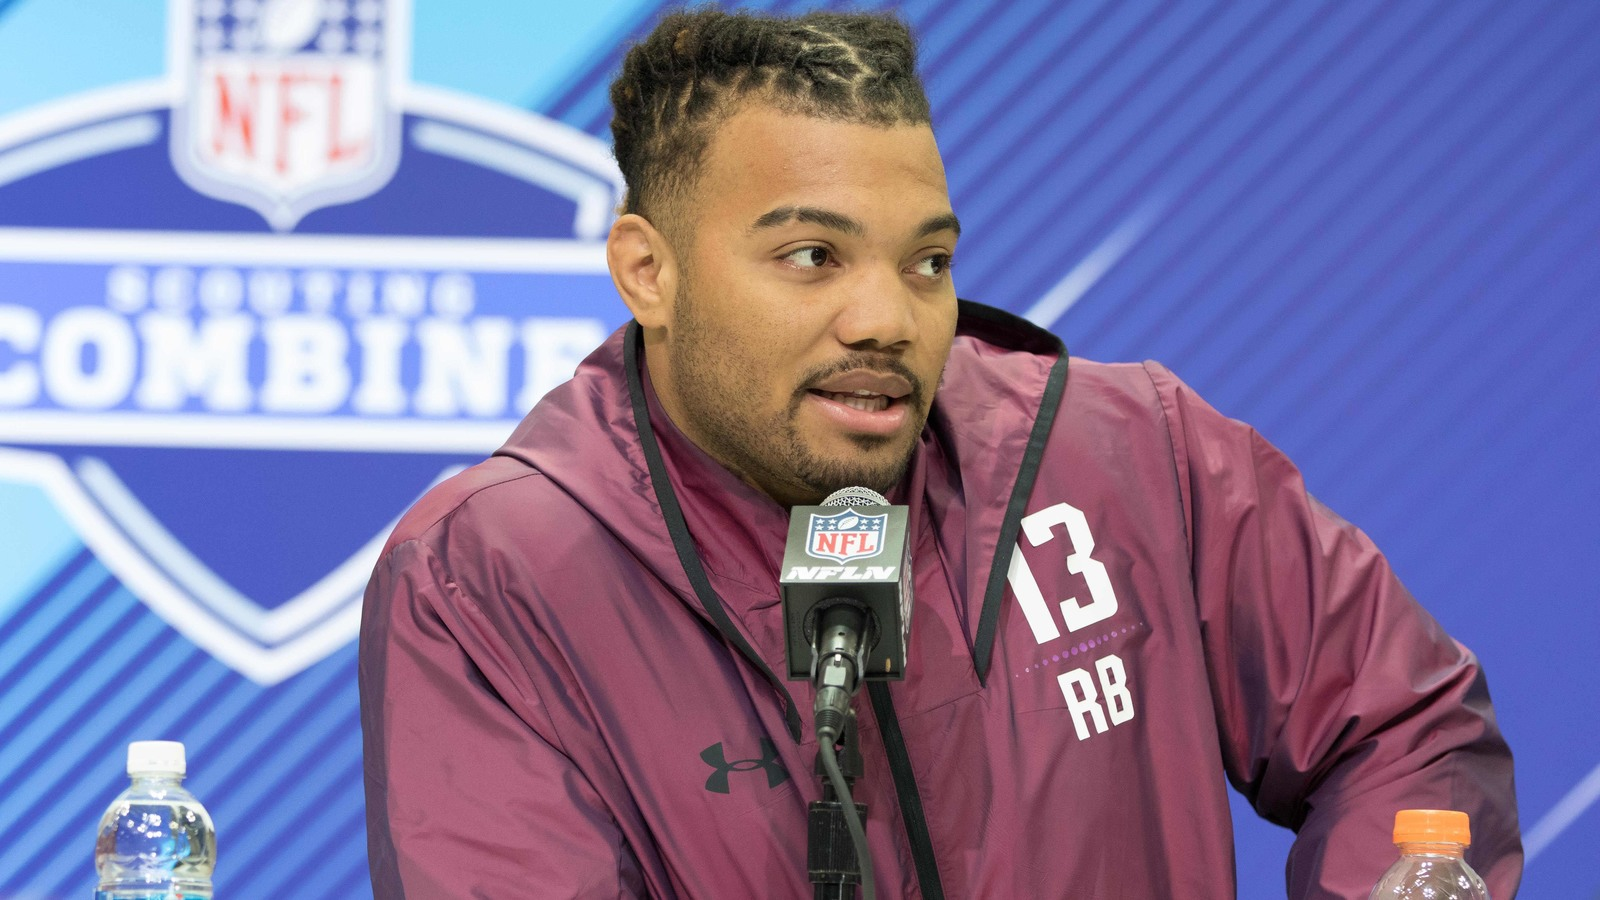 Human Rights Campaign condemns sexuality question at NFL combine